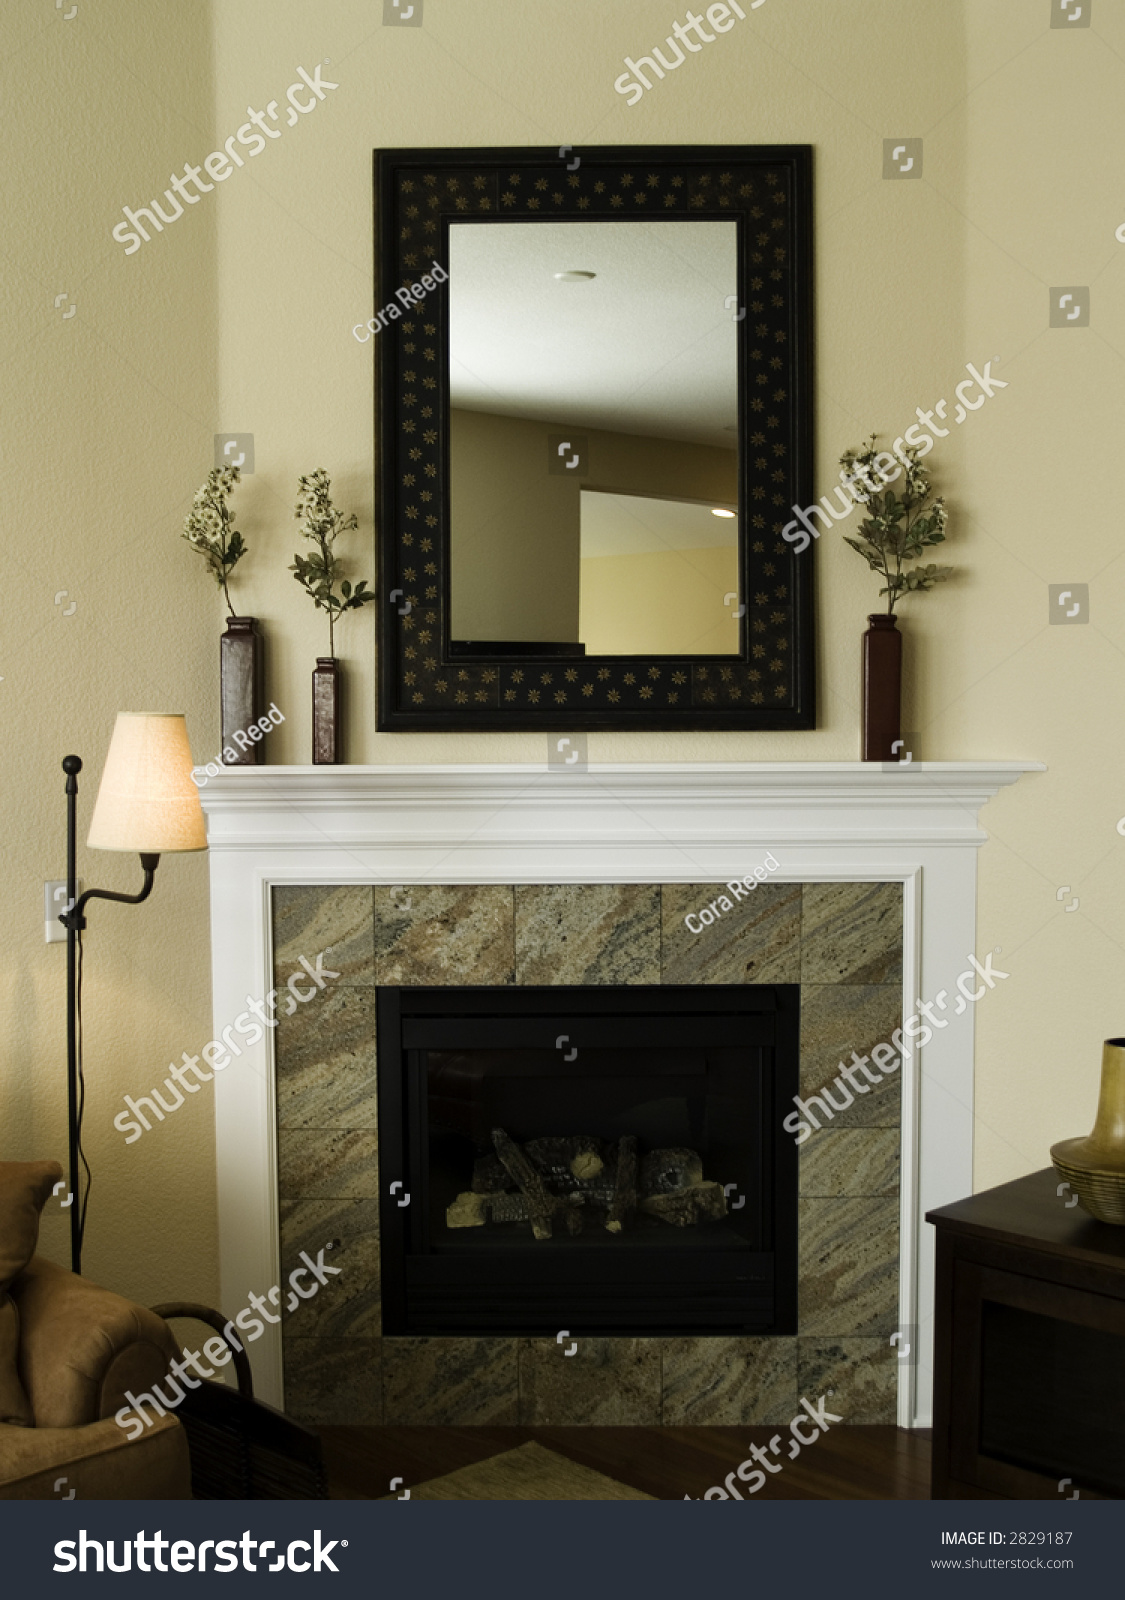 fireplace and mantel with mirror stock photo 2829187 shutterstock